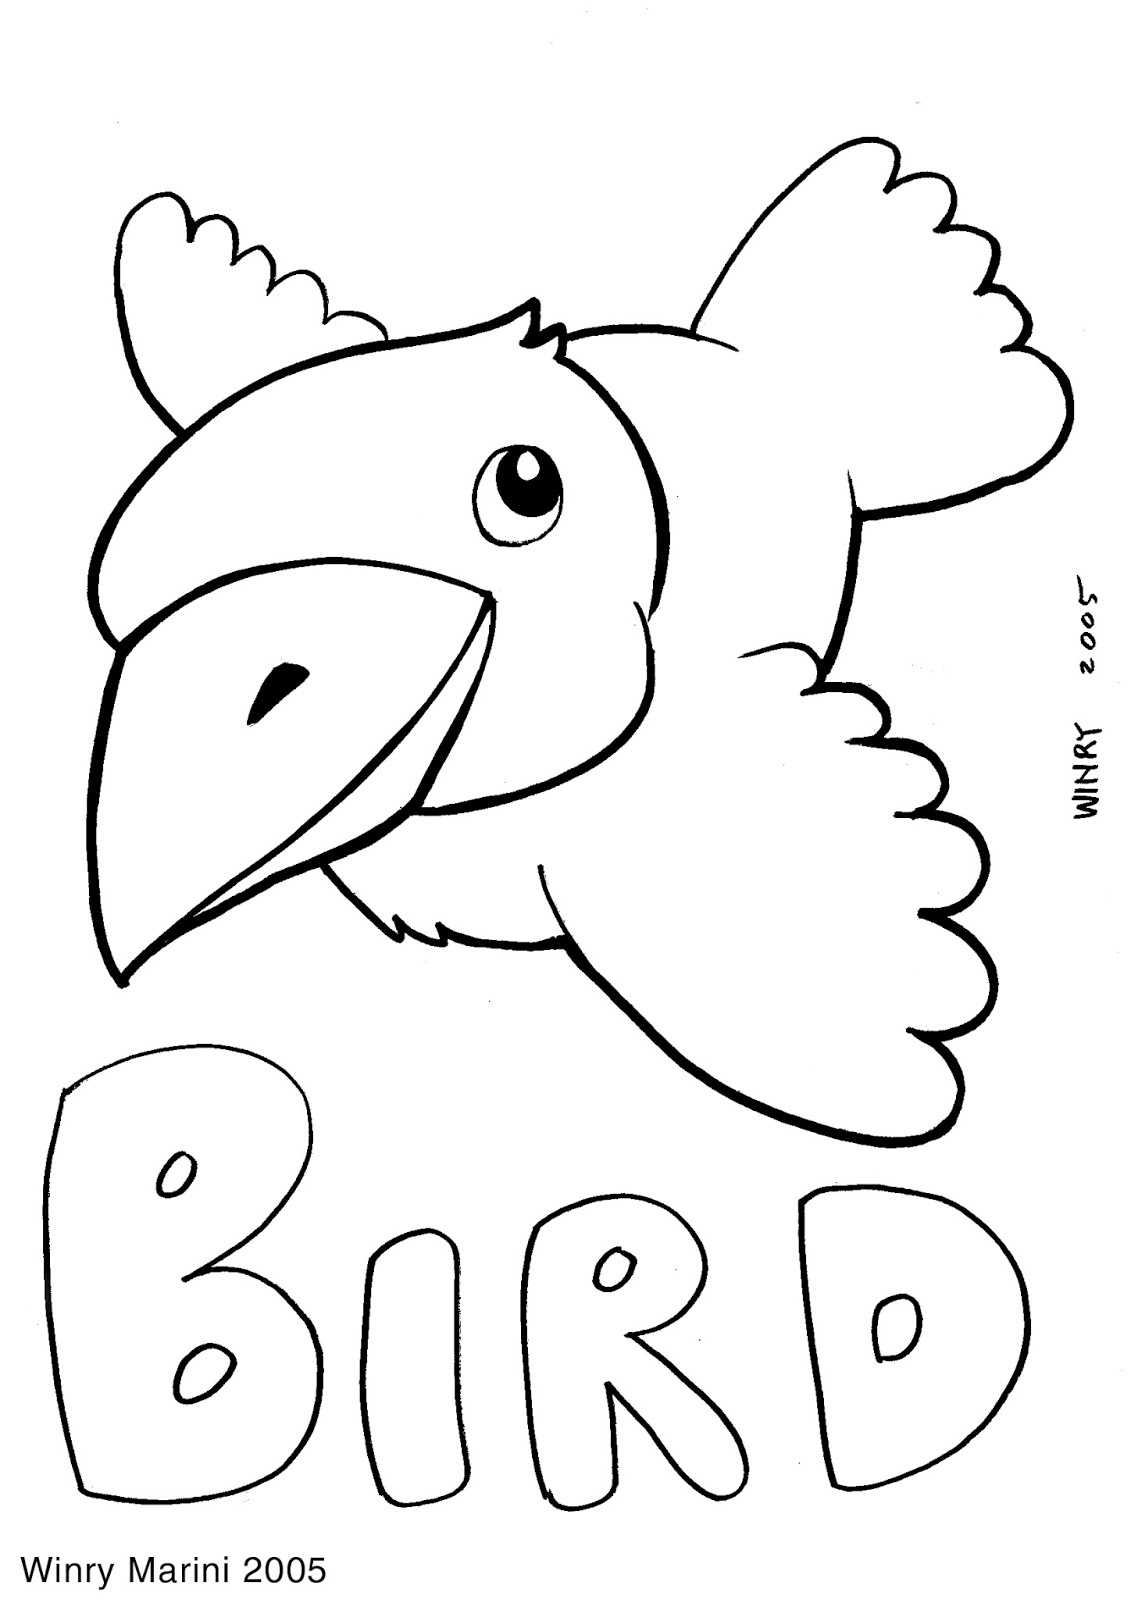 Bird Coloring Page by Winry Marini 2005